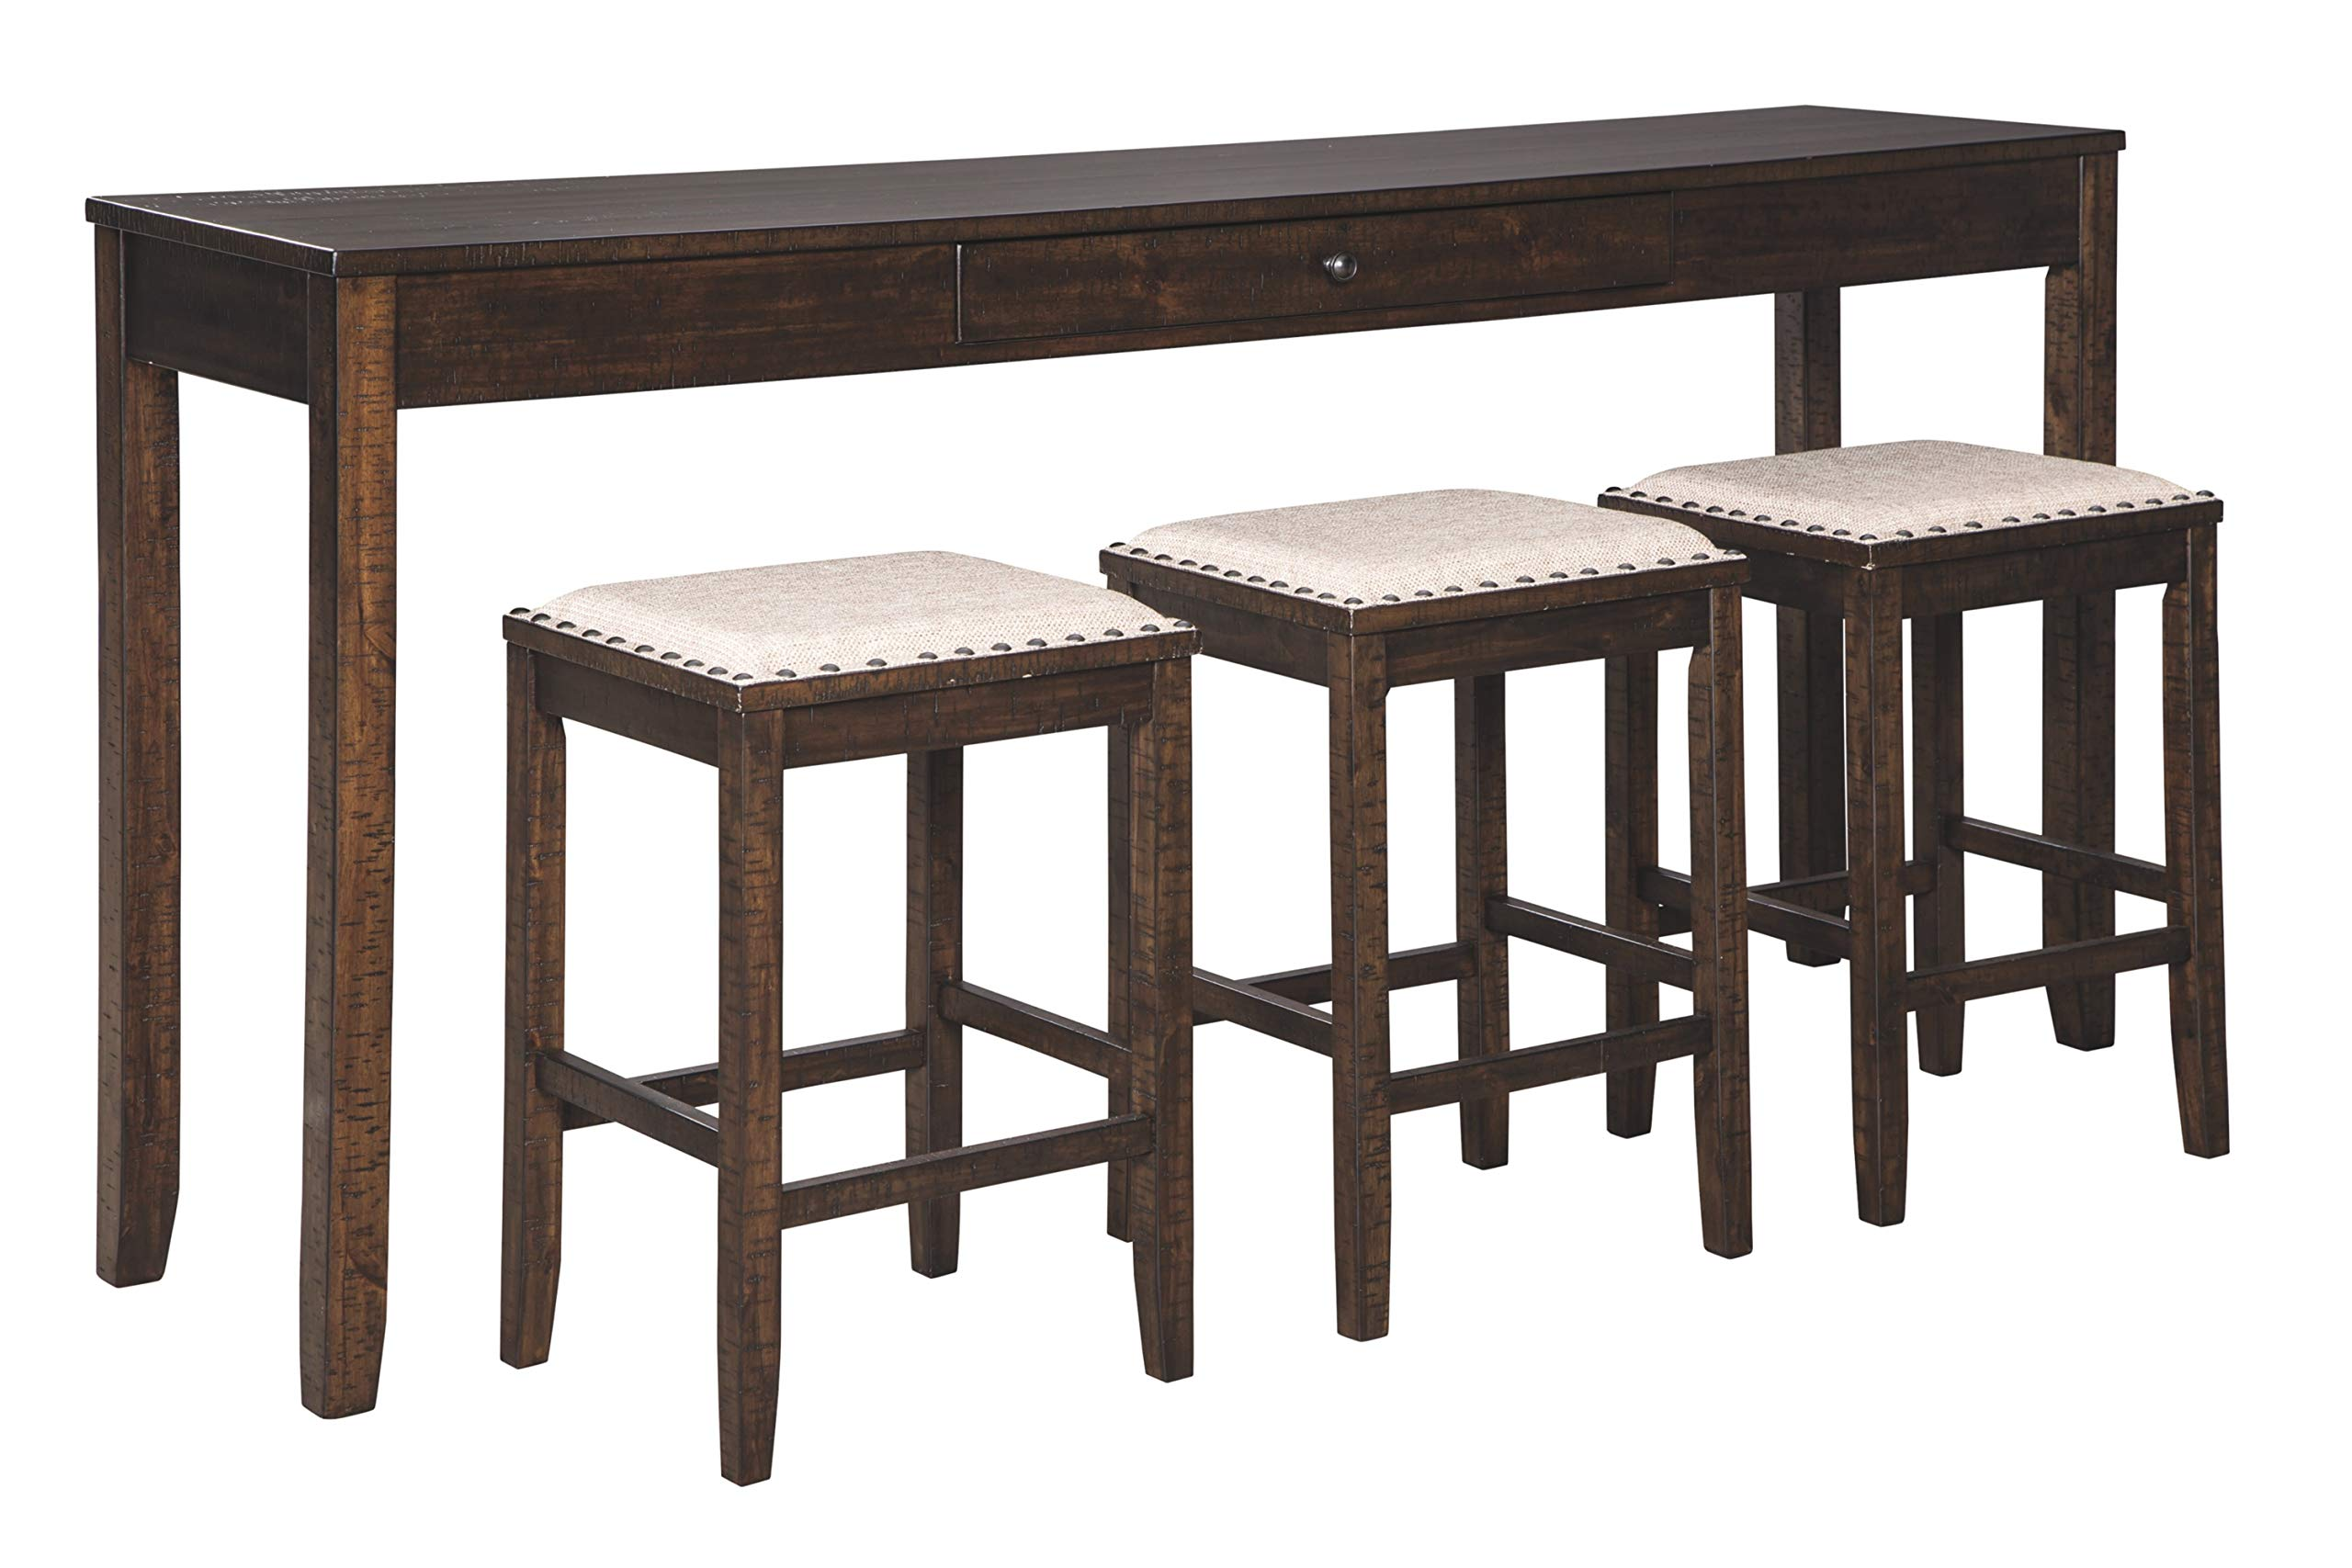 Signature Design By Ashley - Rokane Rectangular Dining Room Counter Table Set- Set of 4 - Casual Style - Brown by Signature Design by Ashley